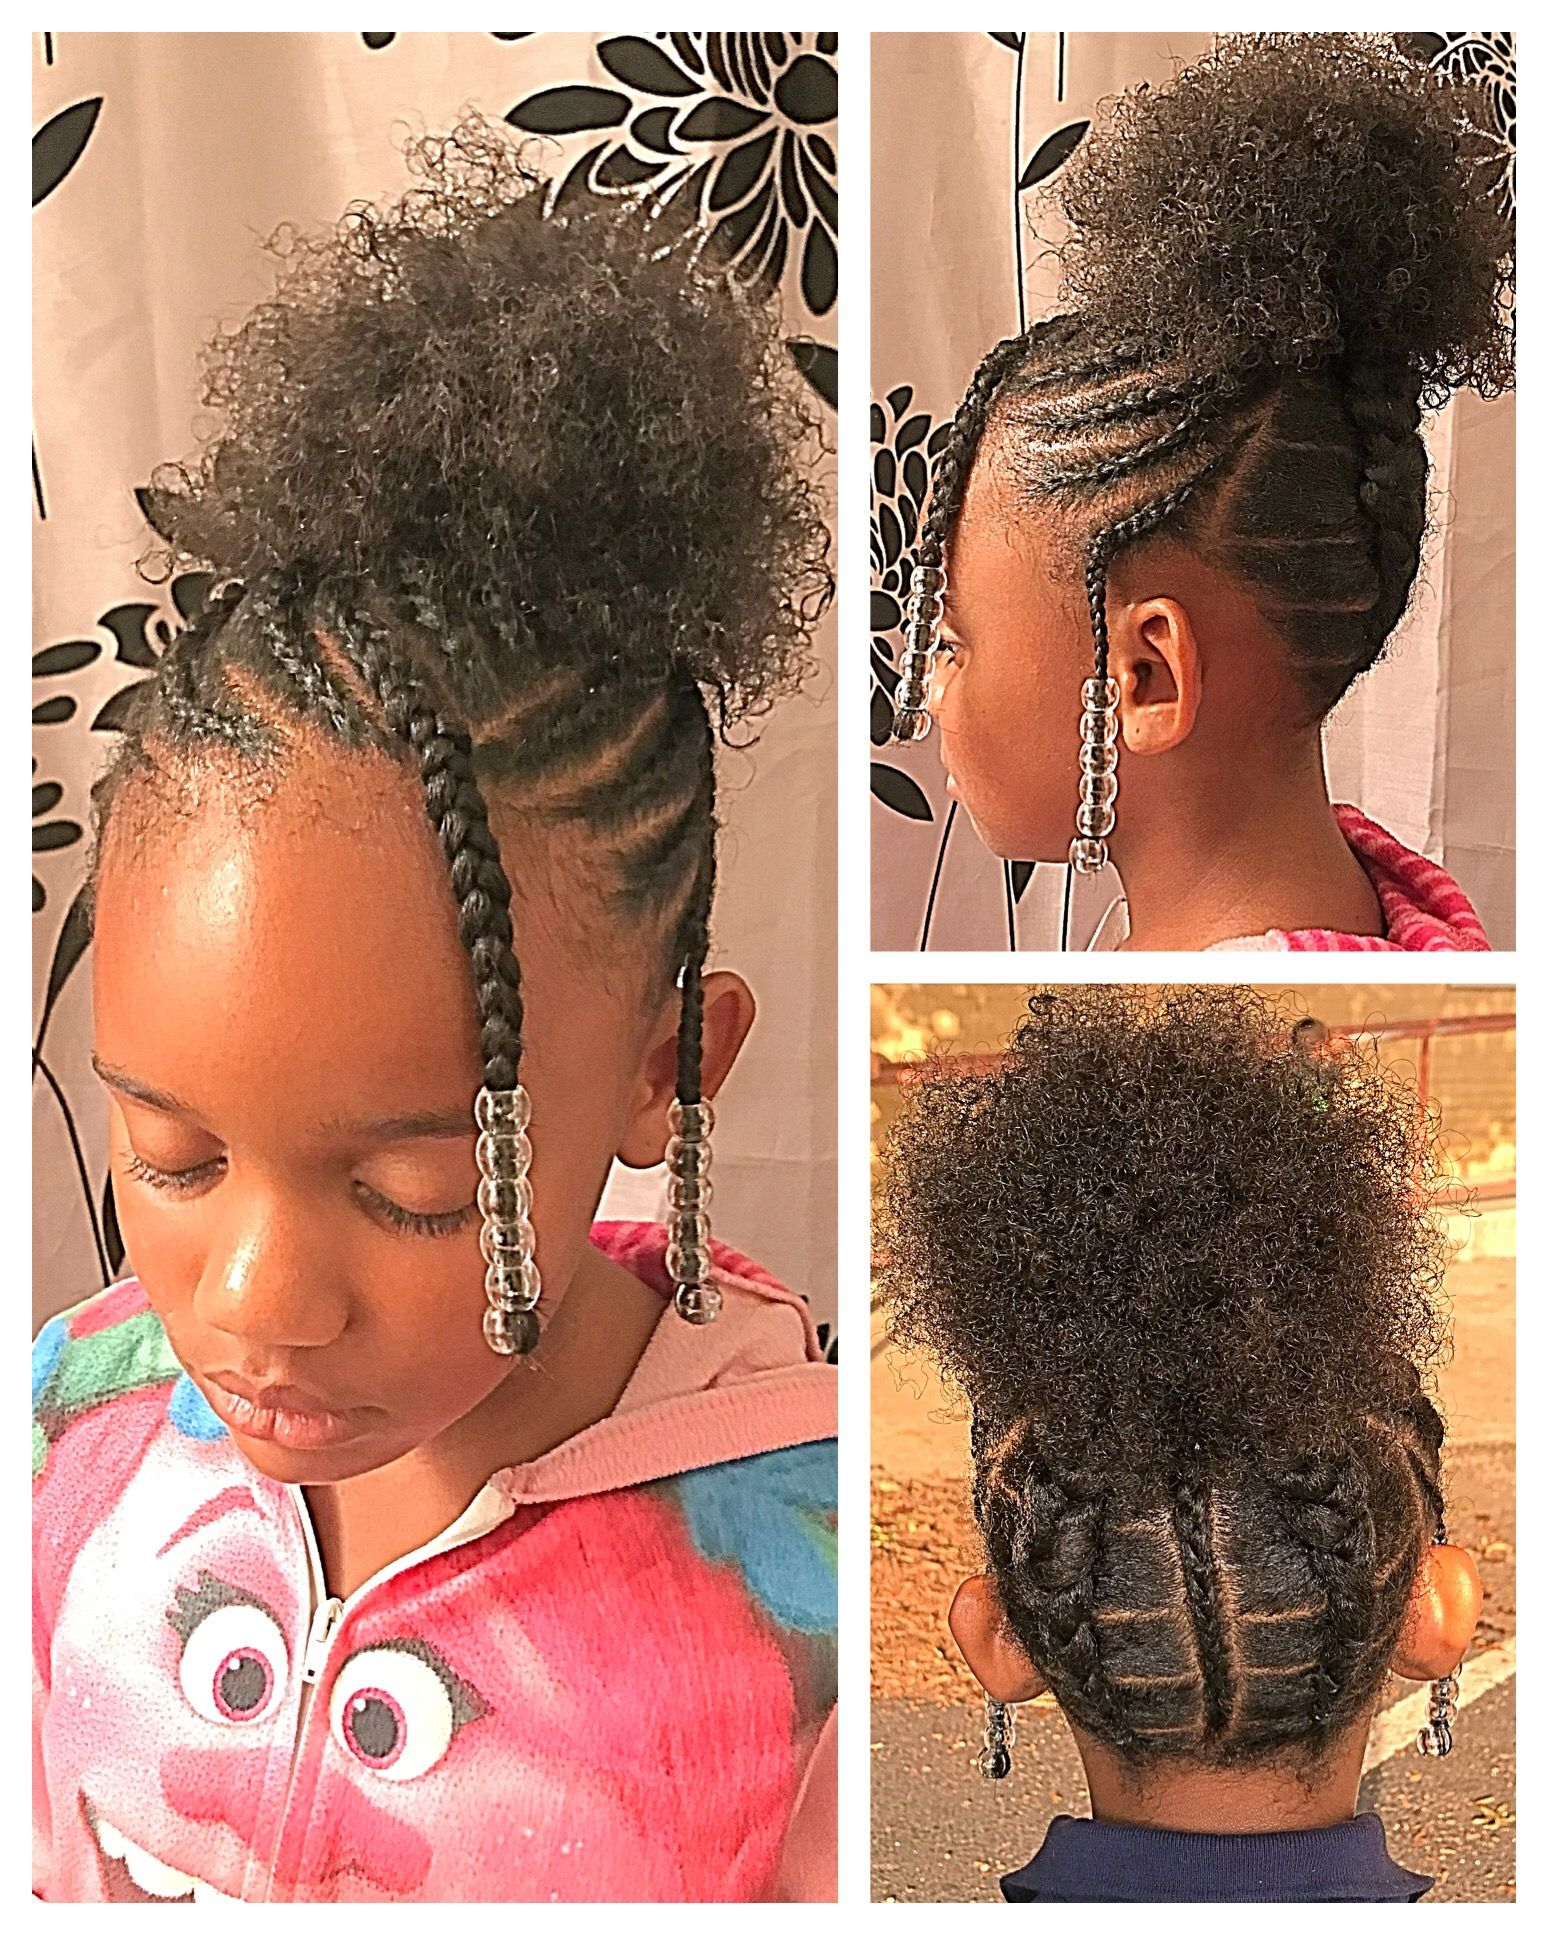 pictures of little black girls hair styles pin by talana williams on my hair style in 2019 2102 | e726d8b28fa12a7c95cfc937b548a91c